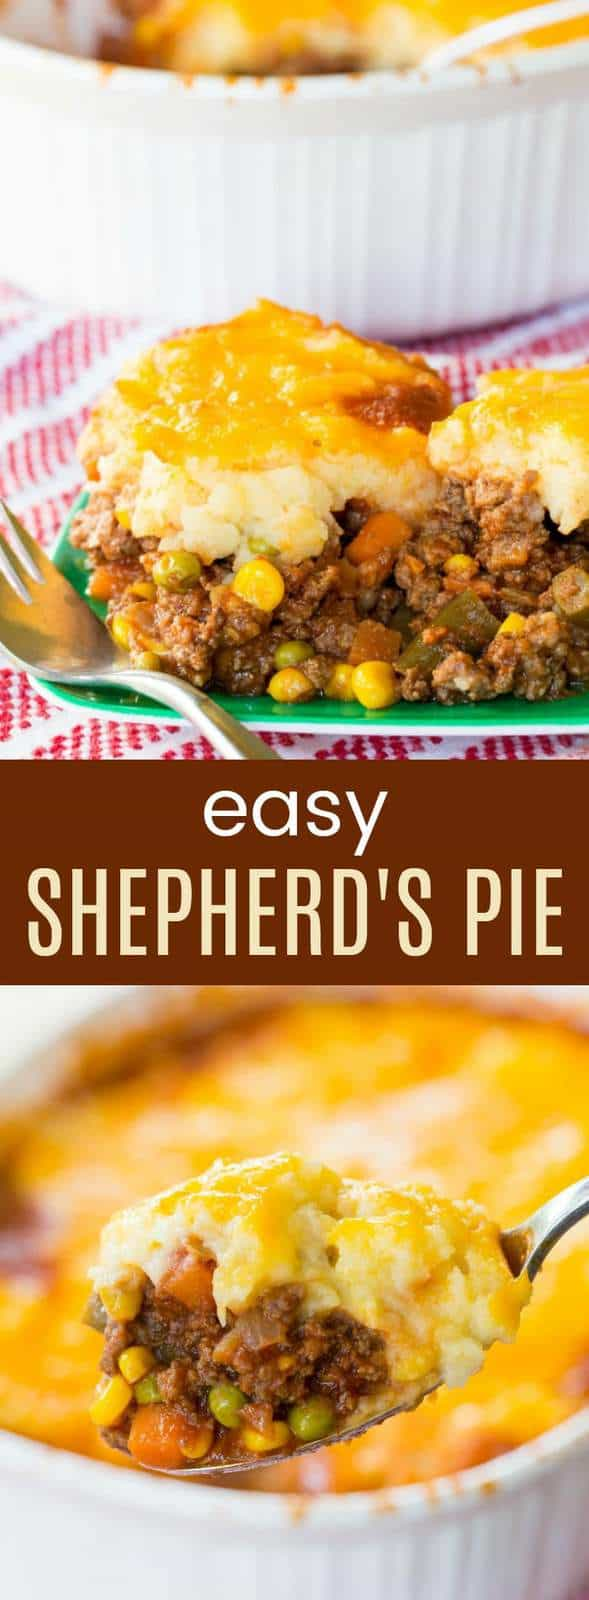 Shepherd's Pie - a easy recipe for the classic meat and vegetable casserole topped with cheesy mashed potatoes. Always a family-favorite comfort food meal, and it's gluten free.